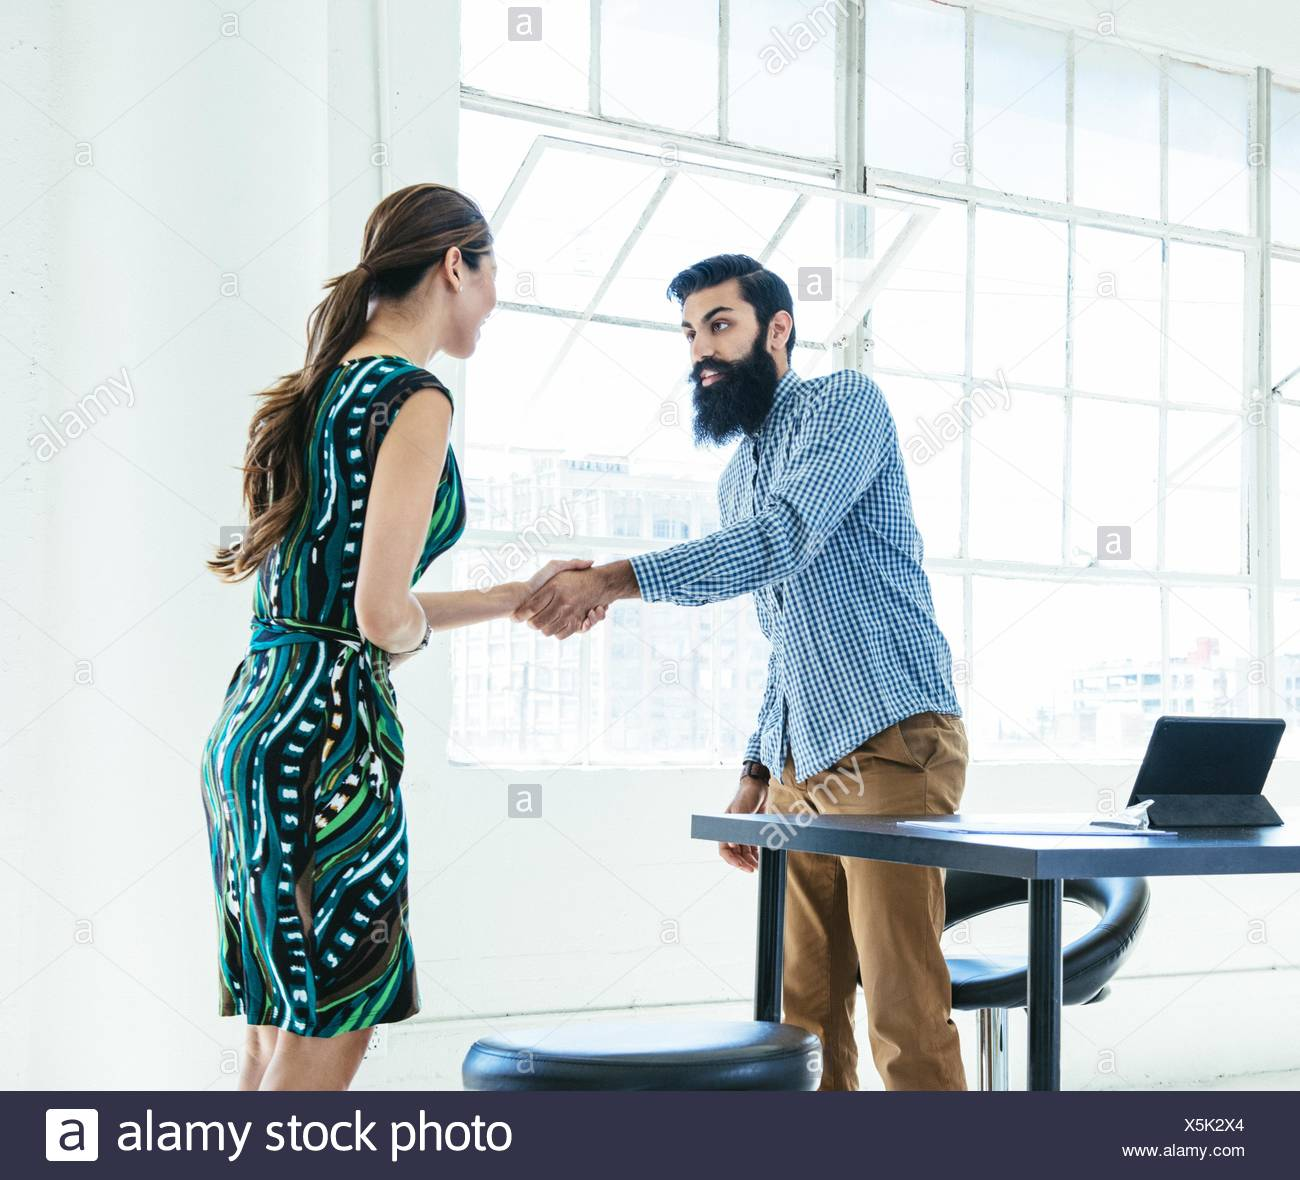 Business people shaking hands at meeting - Stock Image